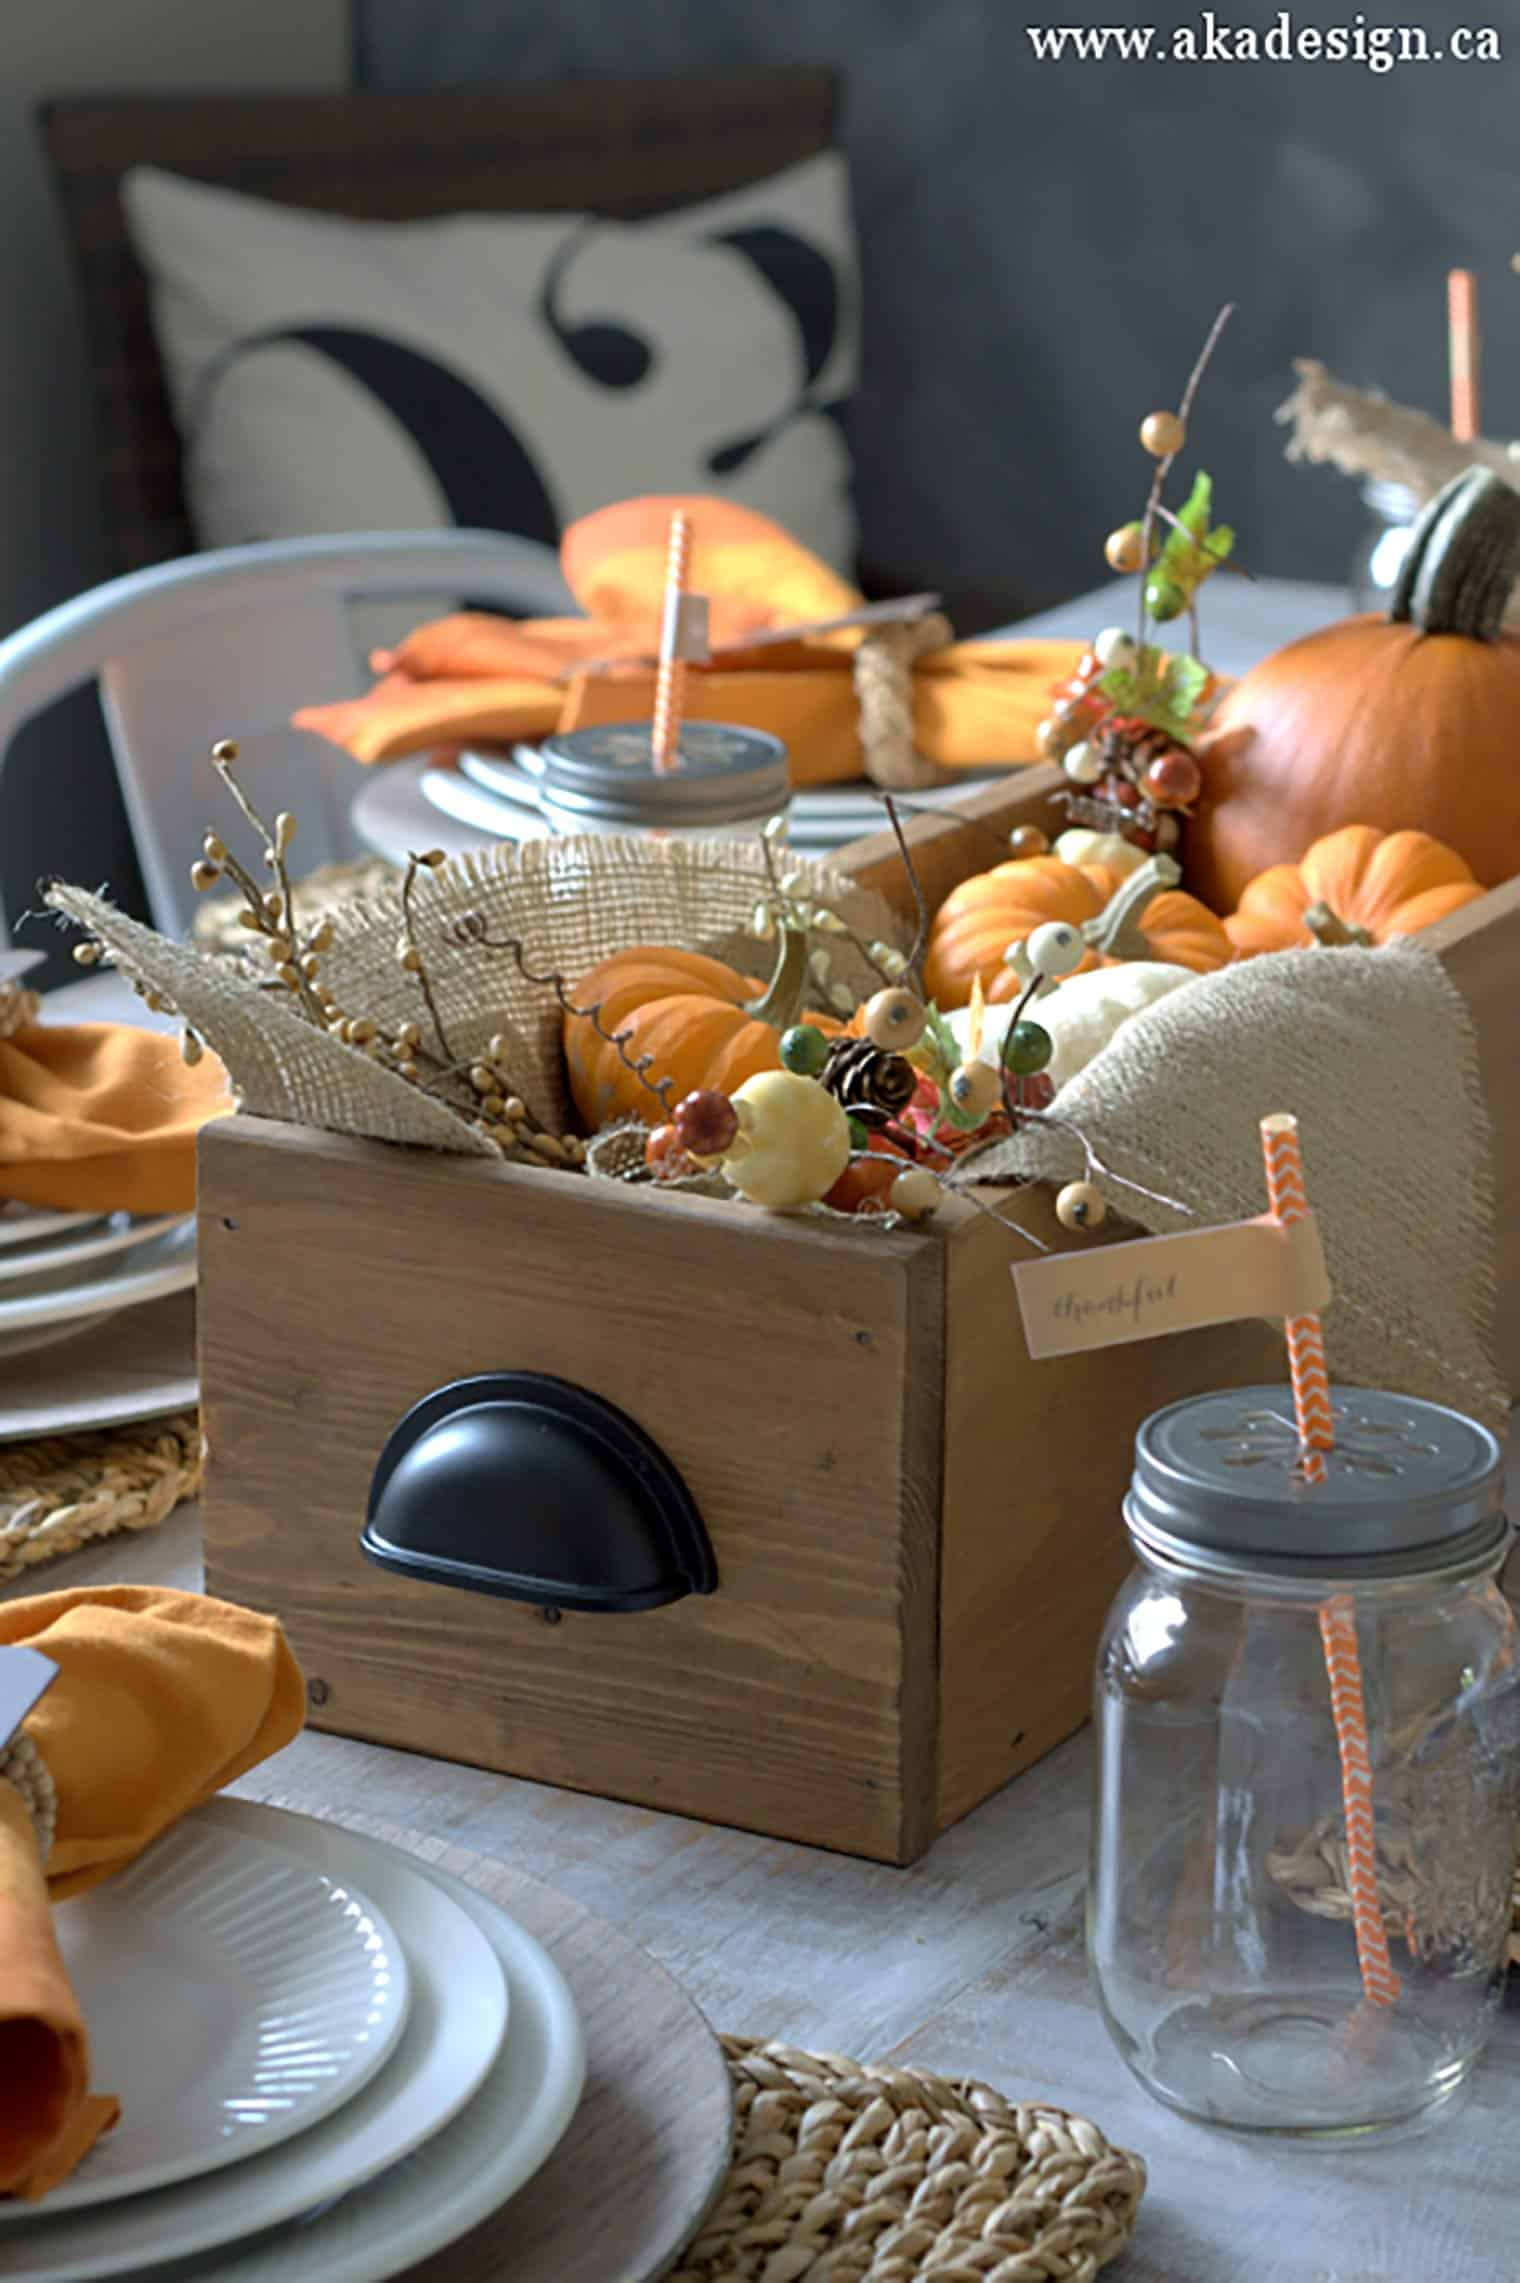 How to make a table box diy wood centerpiece